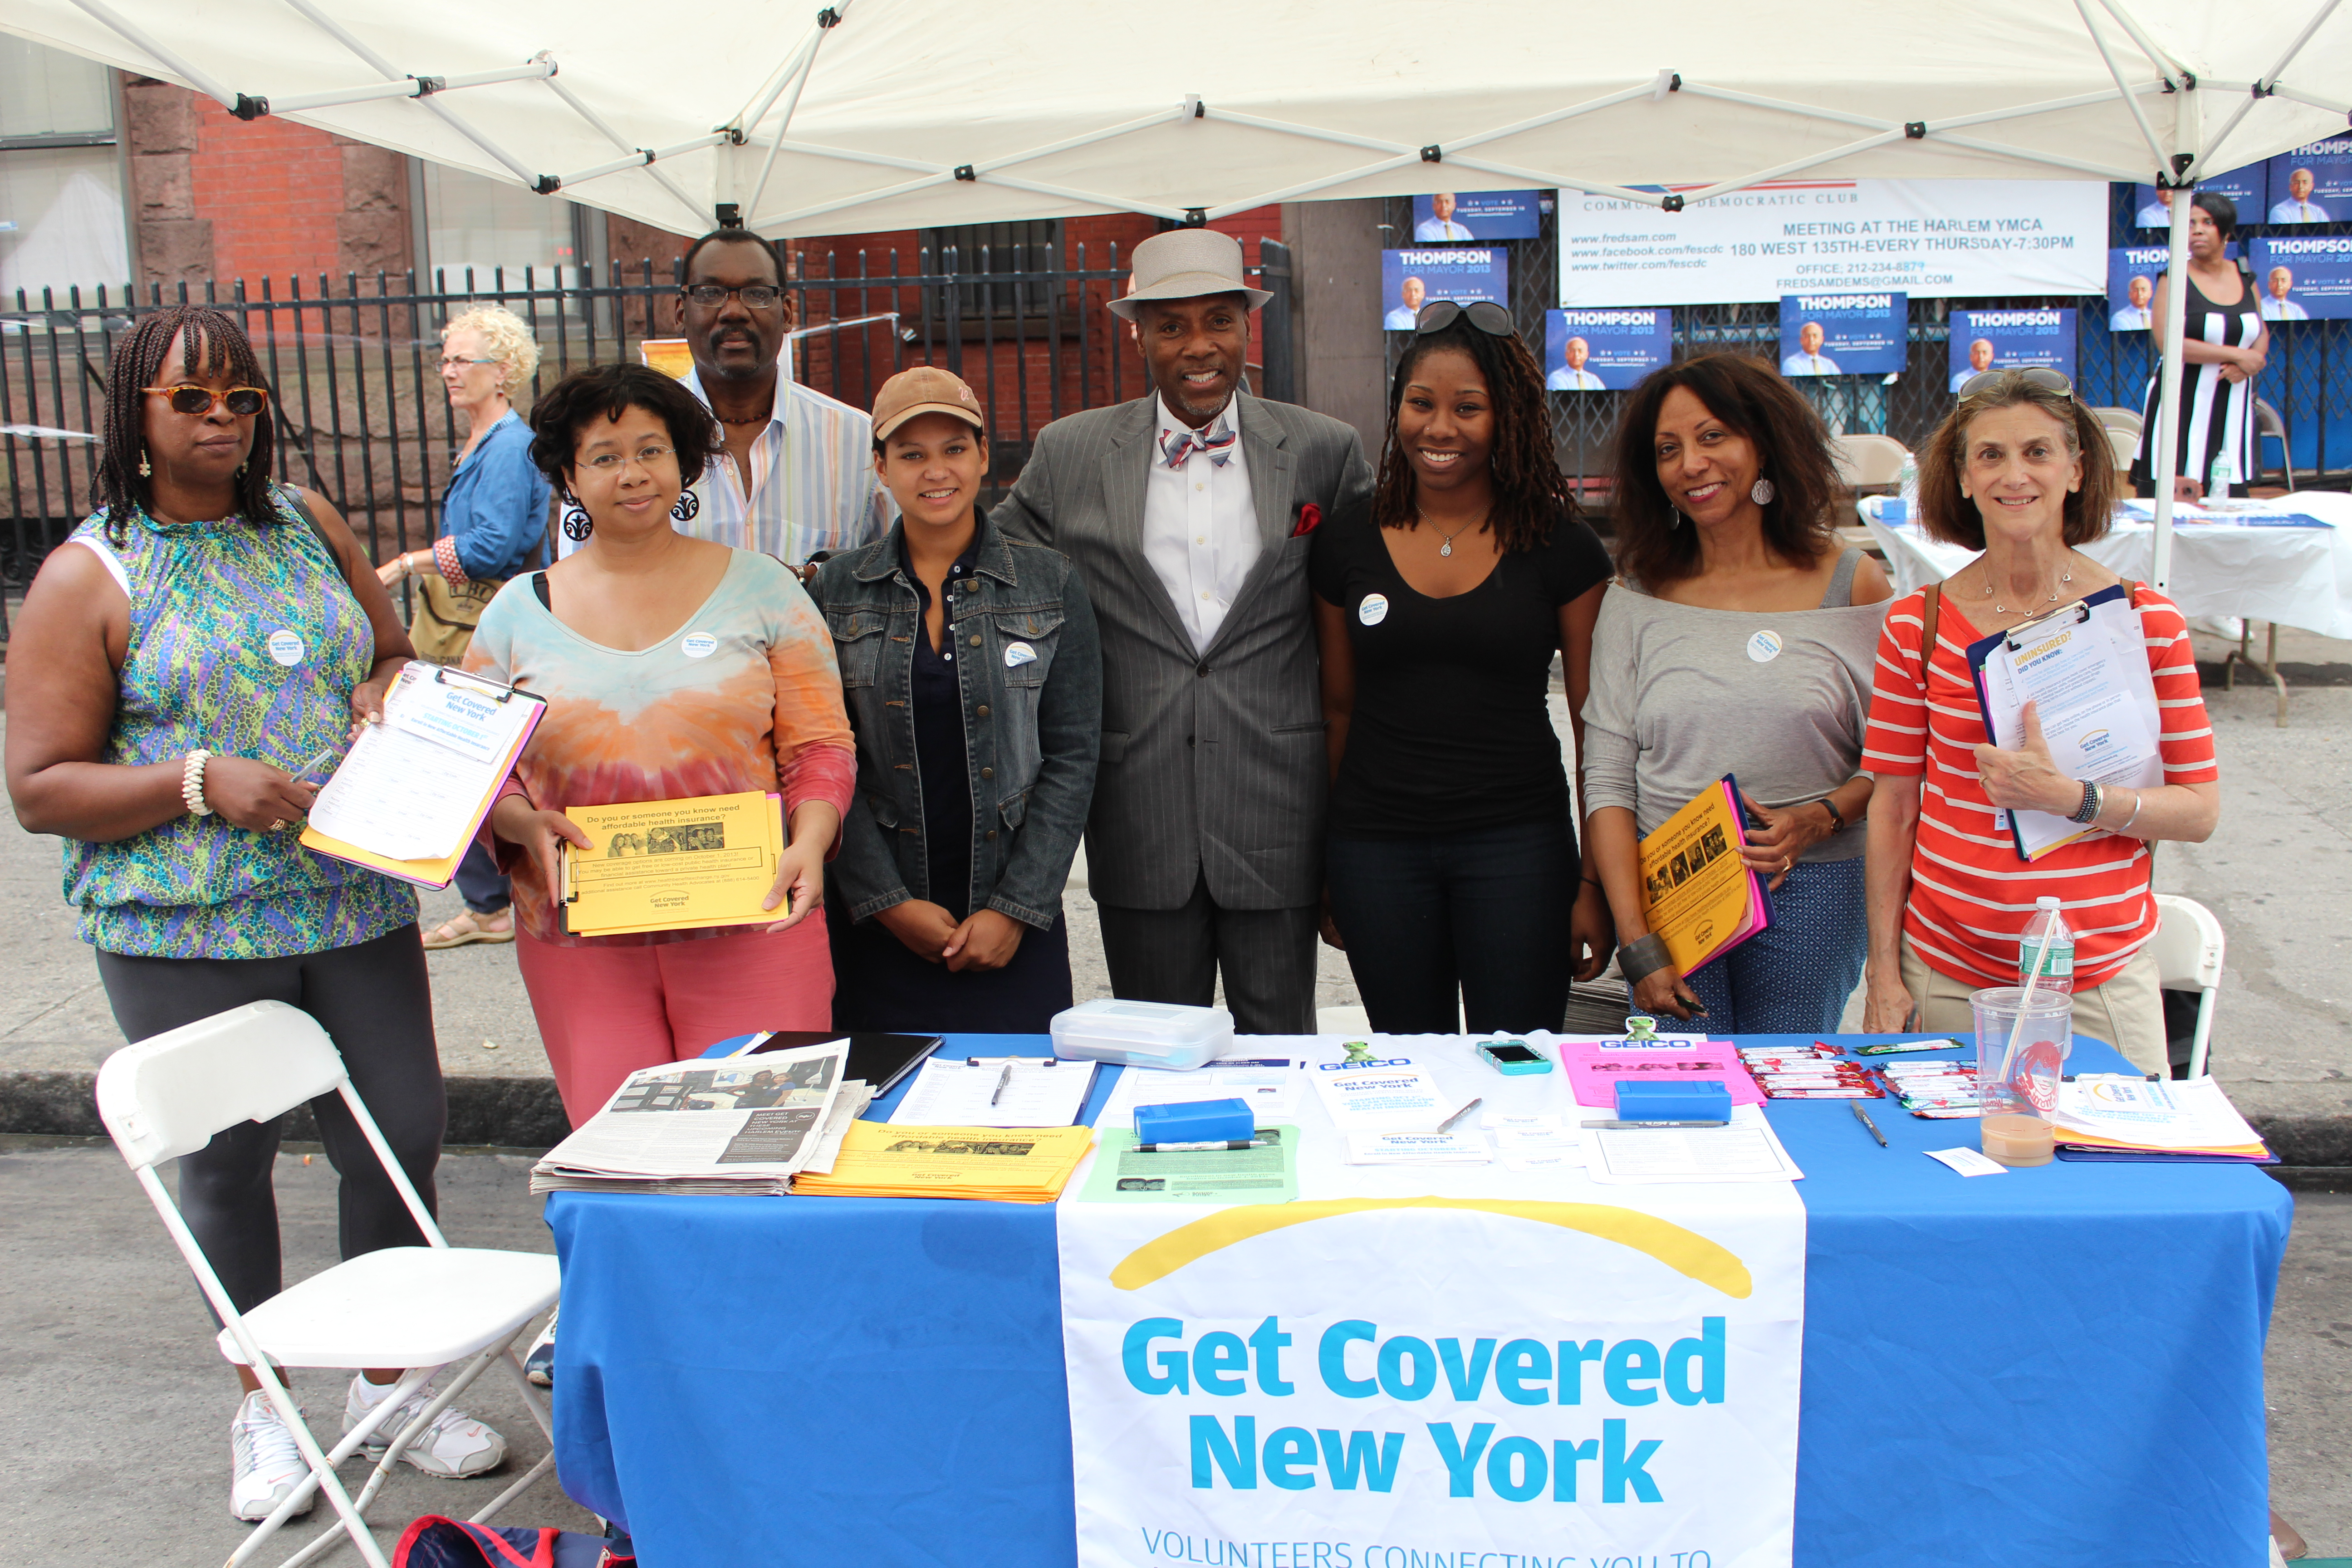 """Get Covered New York"" volunteers at Harlem Week, posing with State Sen. Bill Perkins (center with hat) who stopped by our table to see what we were doing."